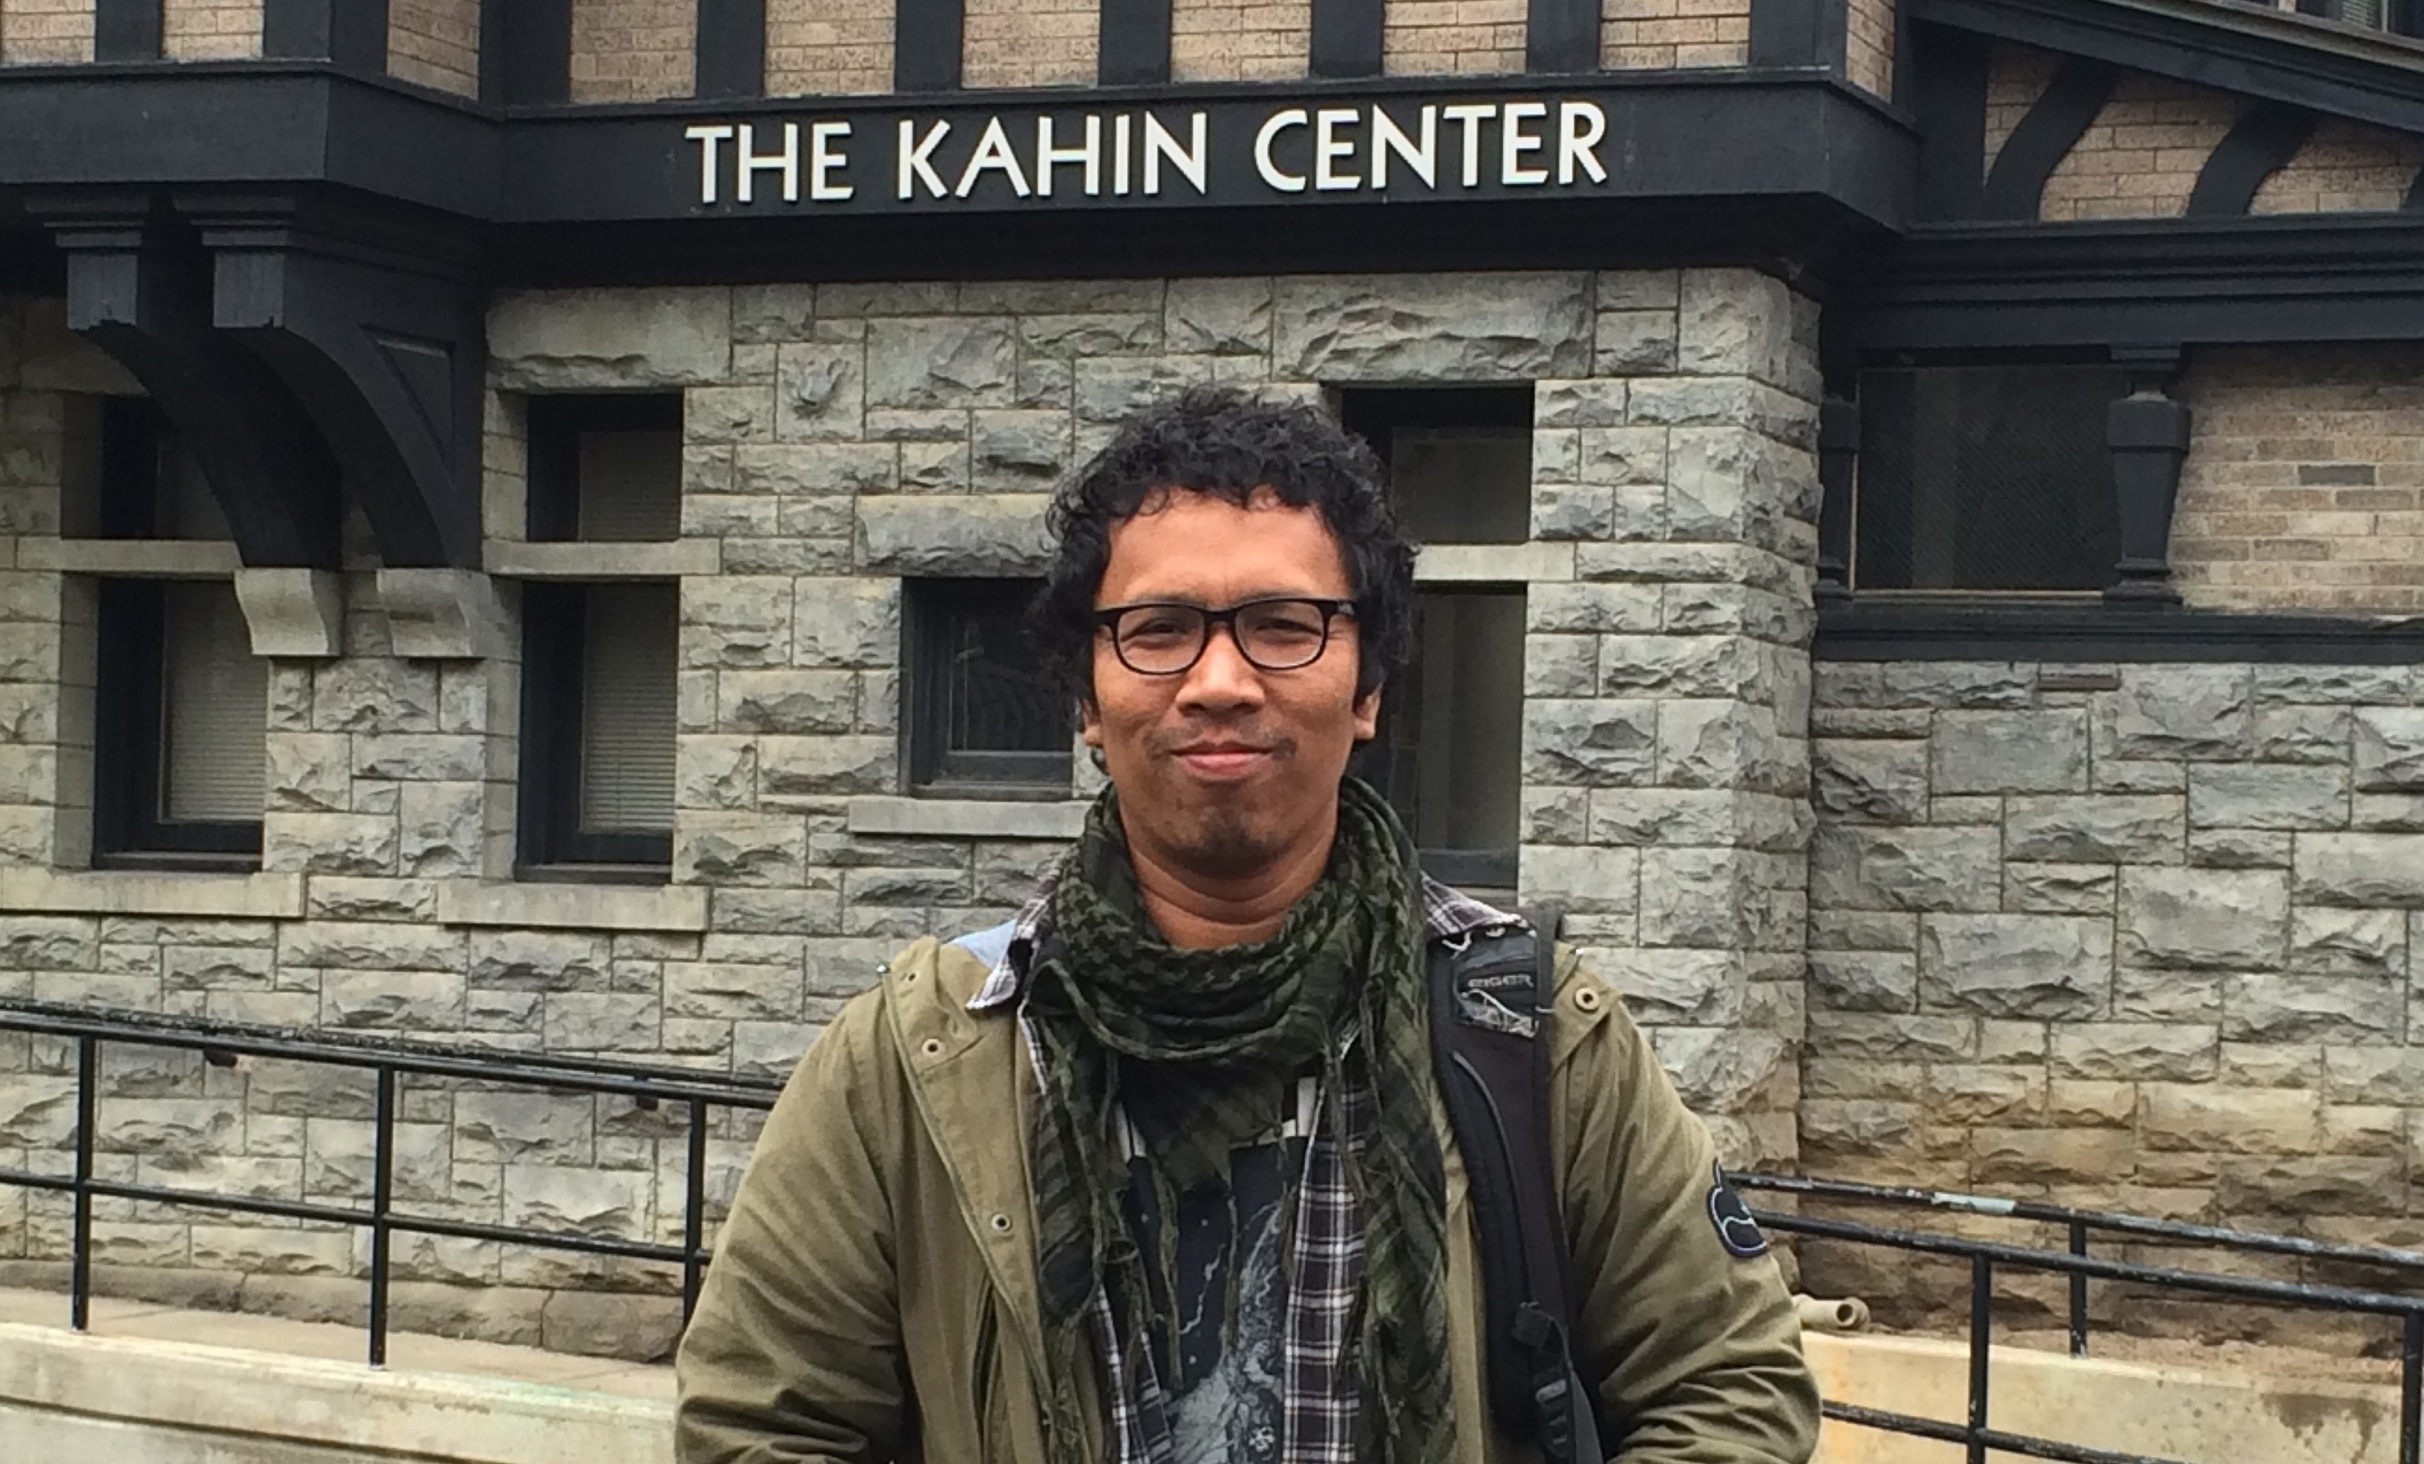 Javanese professor, curator and art historian, Aminudin Siregar TH, visiting the Kahin Center for Southeast Asian Studies while working in New York.